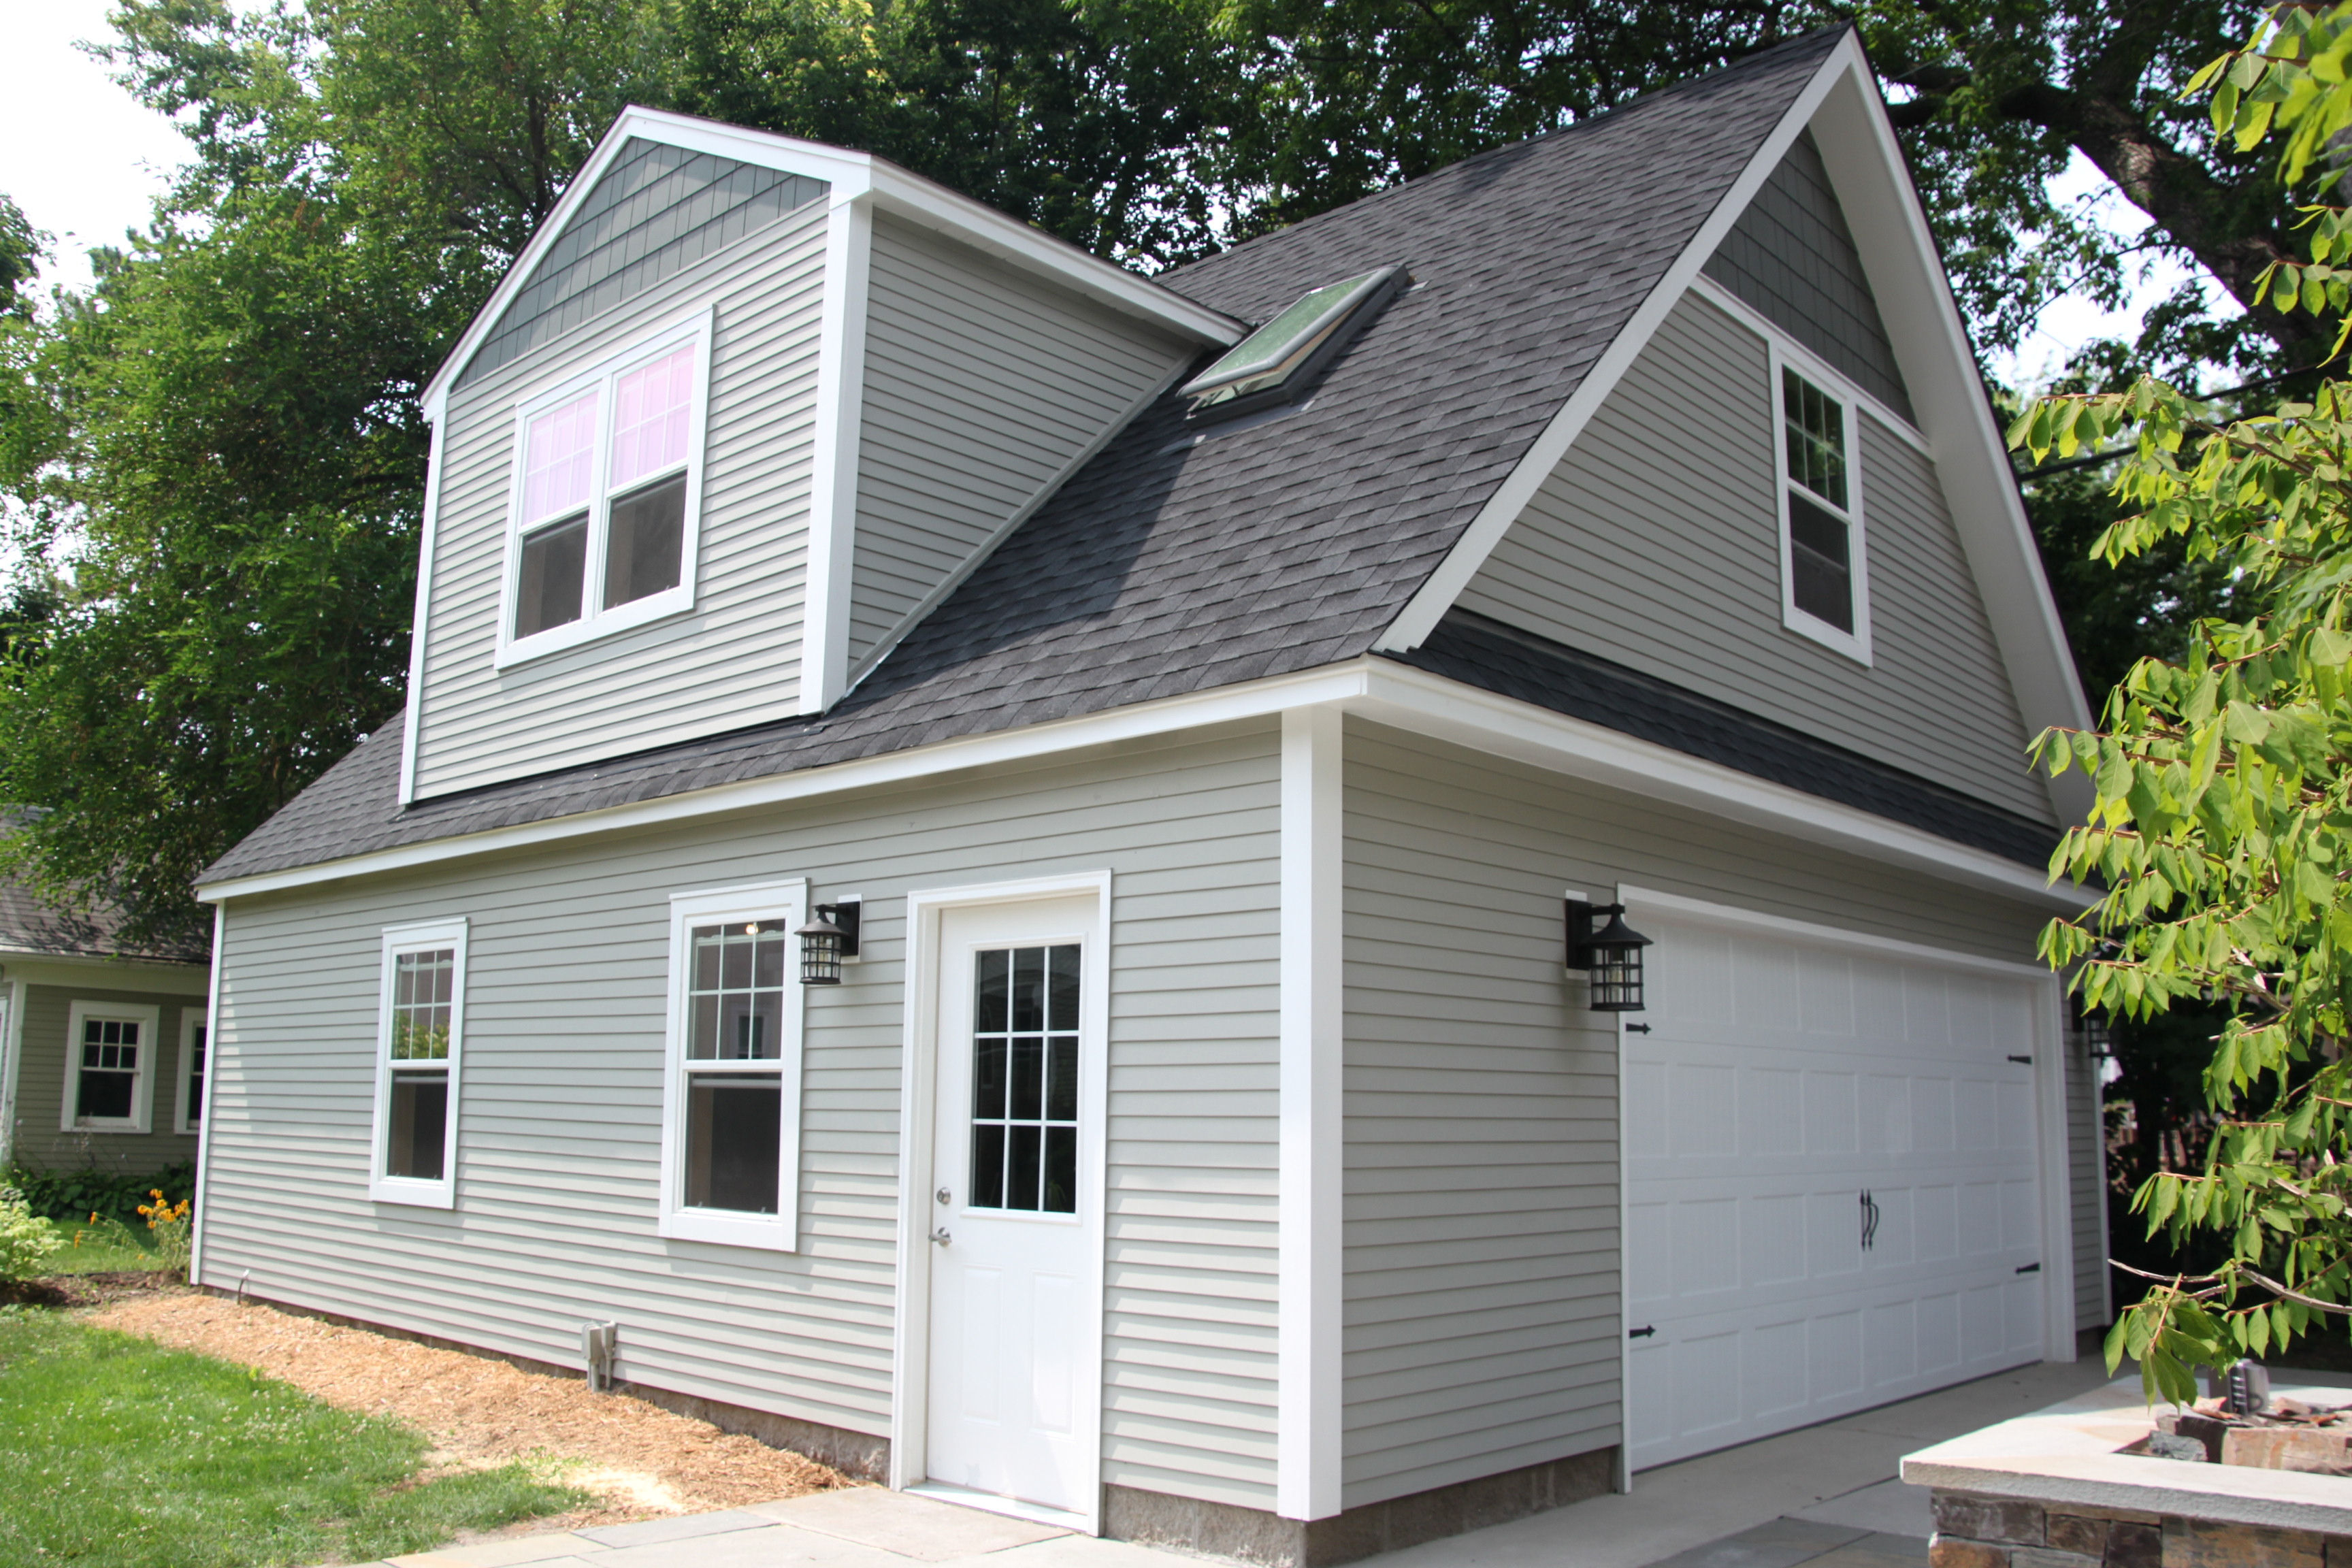 ... two car two story garage ... & 2 Car 2 Story Garage Using Attic Trusses and Dormer